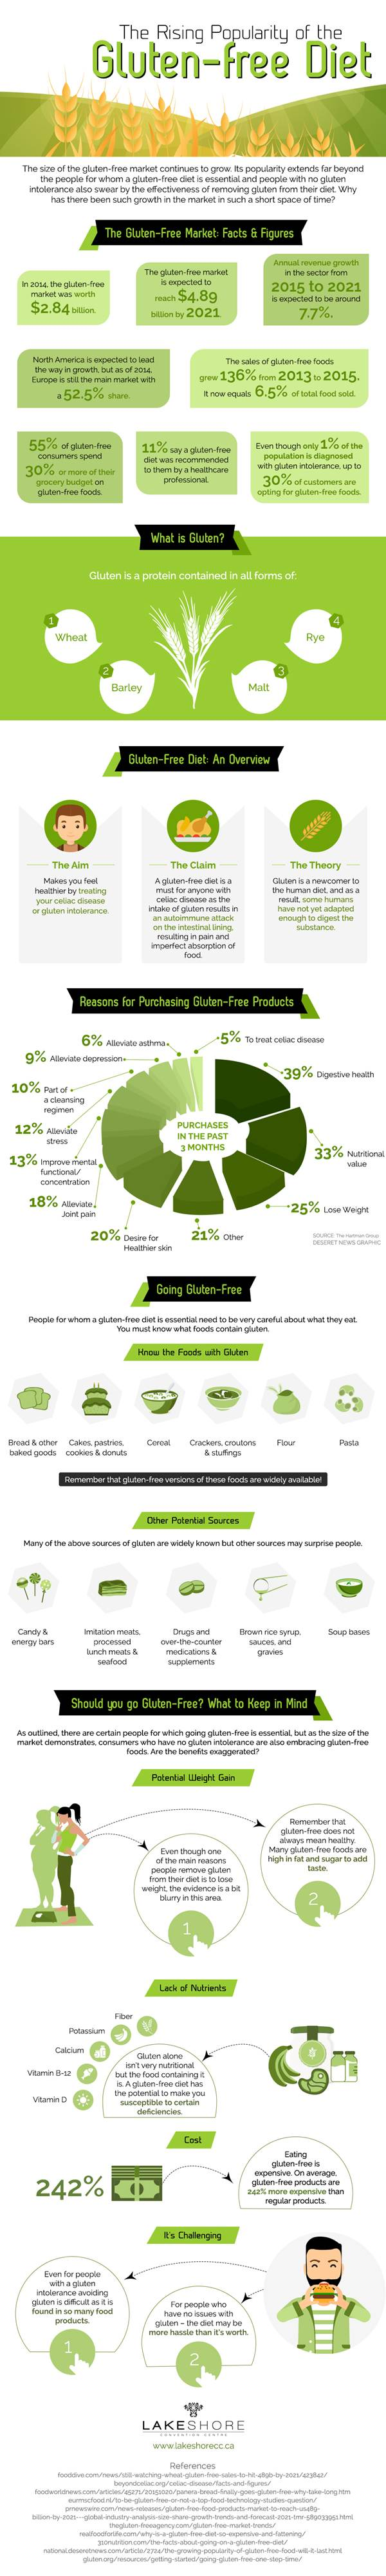 the-rising-popularity-of-the-gluten-free-diet-infographic